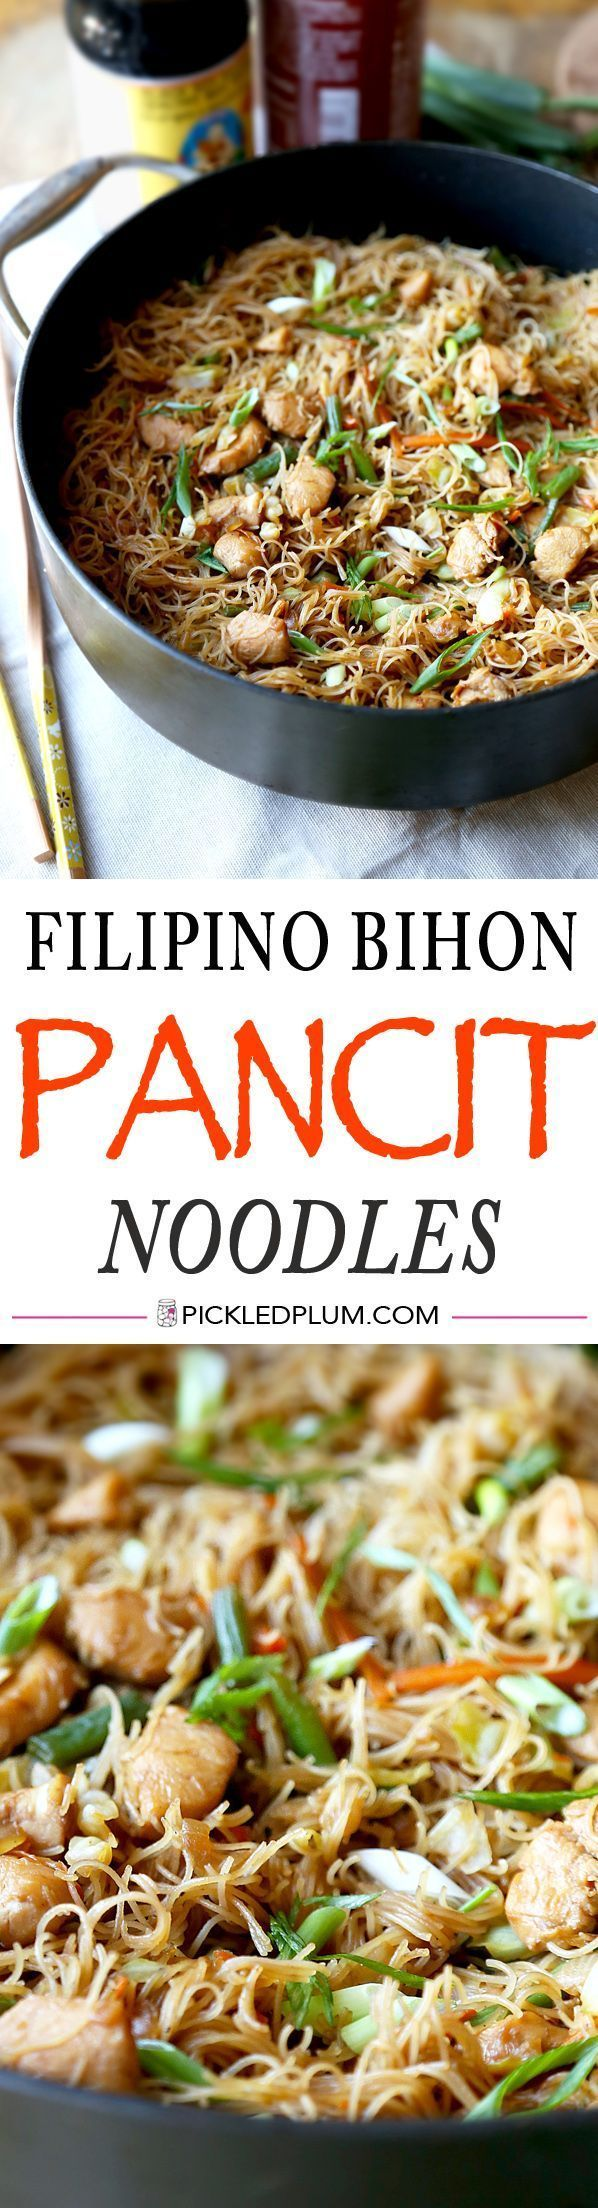 Filipino Bihon Pancit Noodles - Sweet, savory, Easy and ready in less than 25 minutes! Recipe, Easy, Filipino, Dinner, Noodles